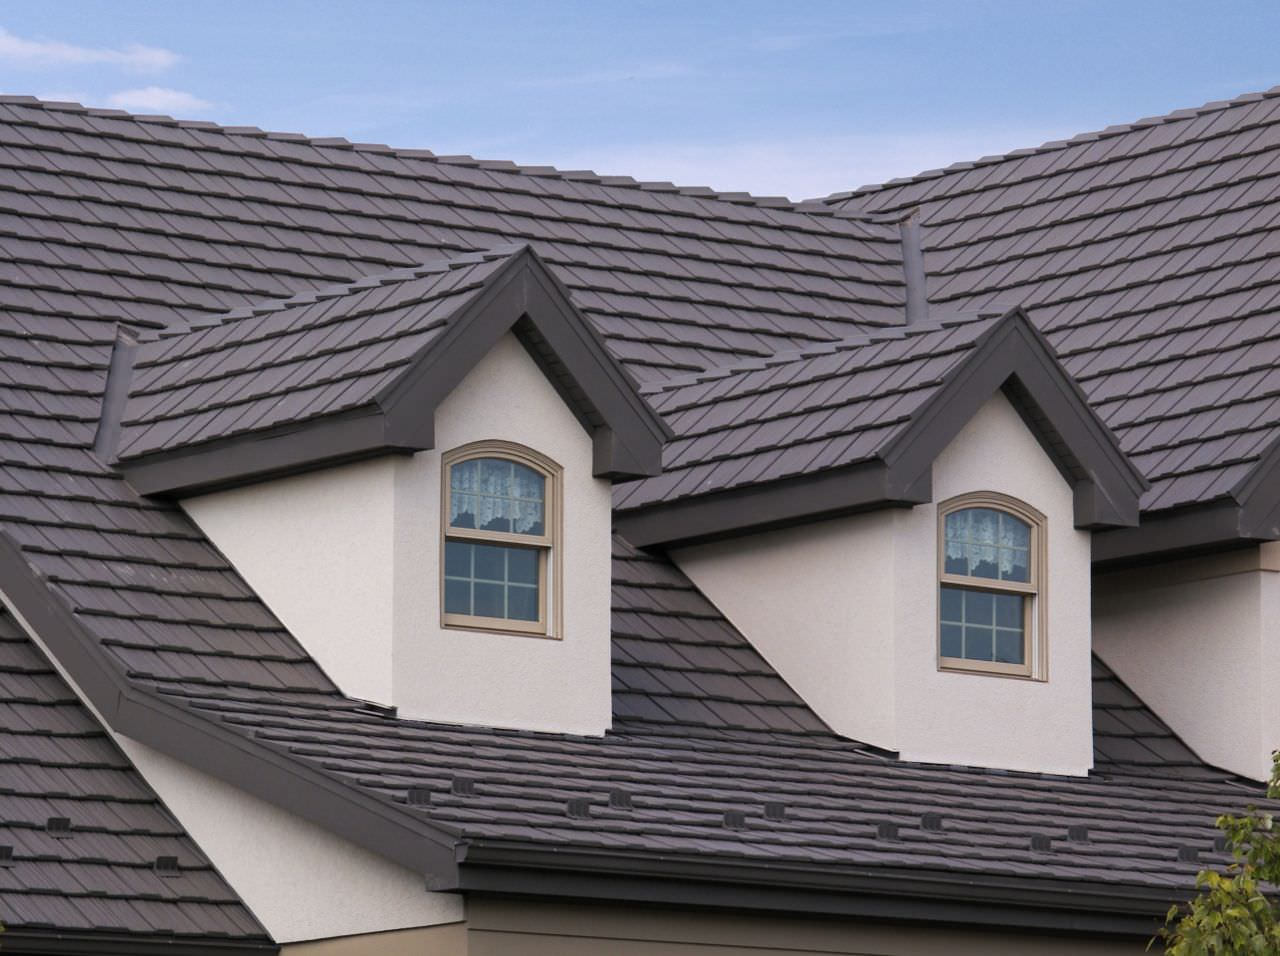 Which Roofing Tiles Are Best For Your Home? – Gawin